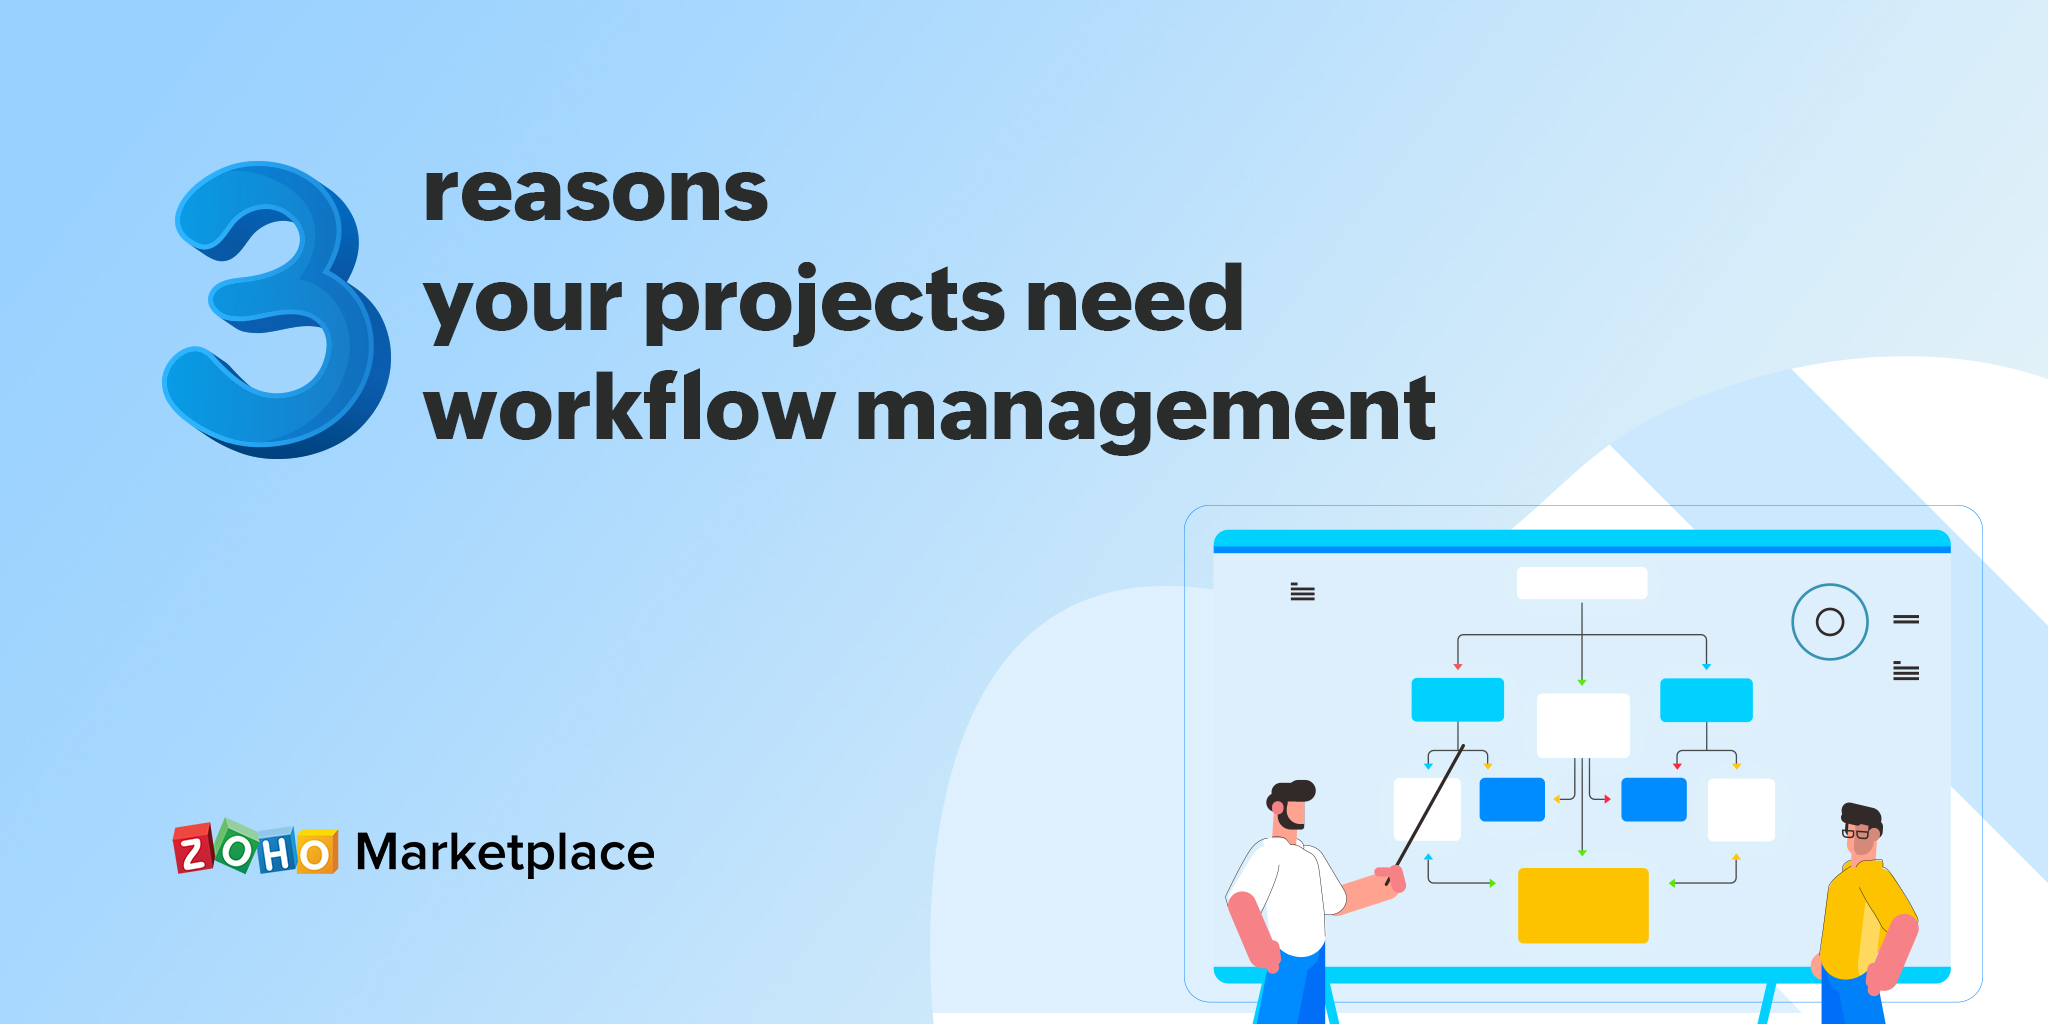 3 reasons your projects need workflow management